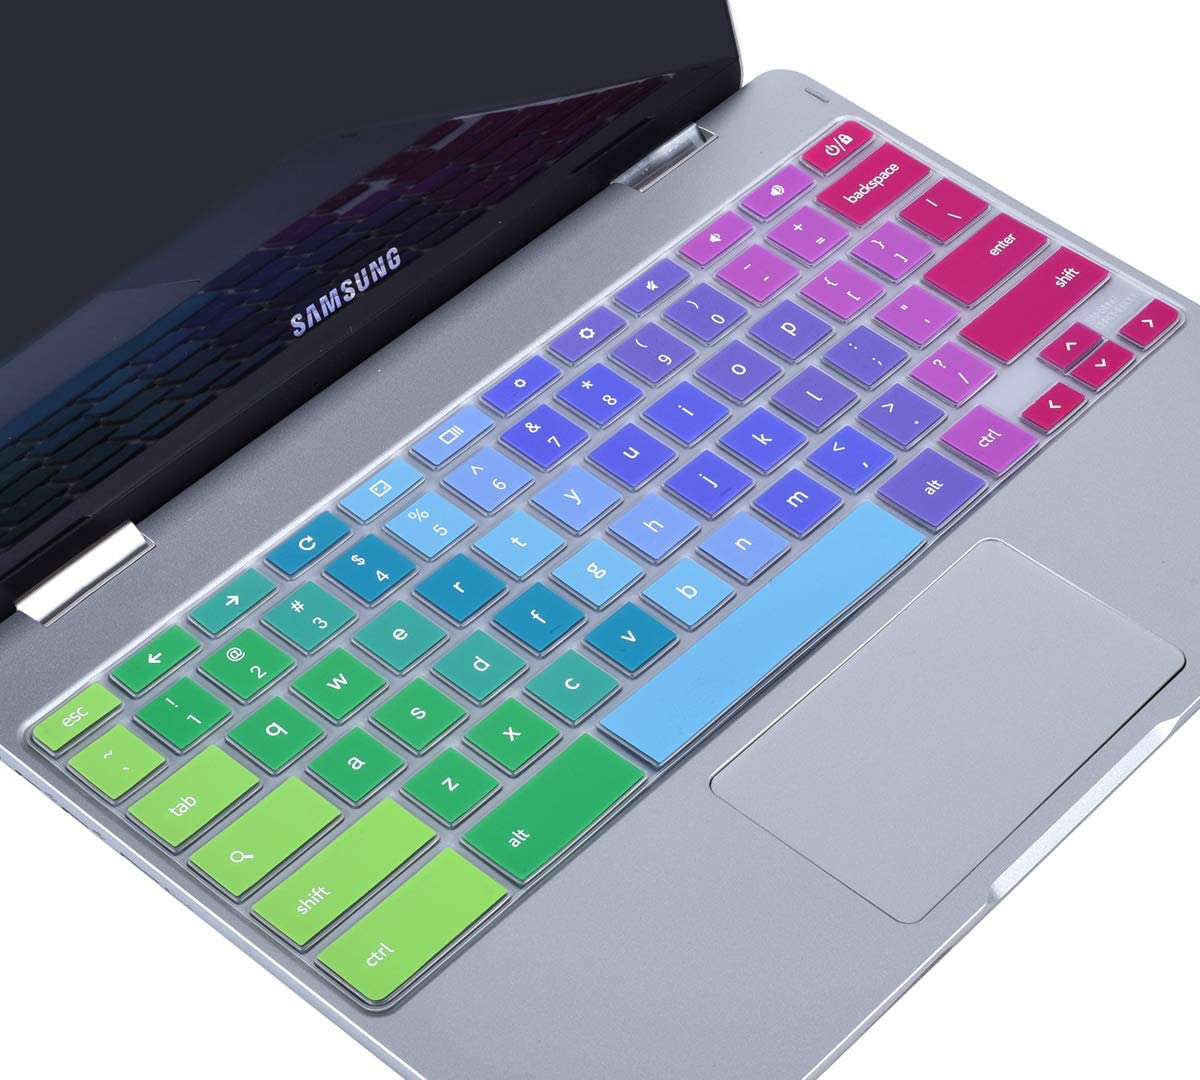 Colorful Keyboard Cover Skin for 2019/2018/2017 Samsung Chromebook 3 XE500C13 XE501C13 11.6 inch / 11.6